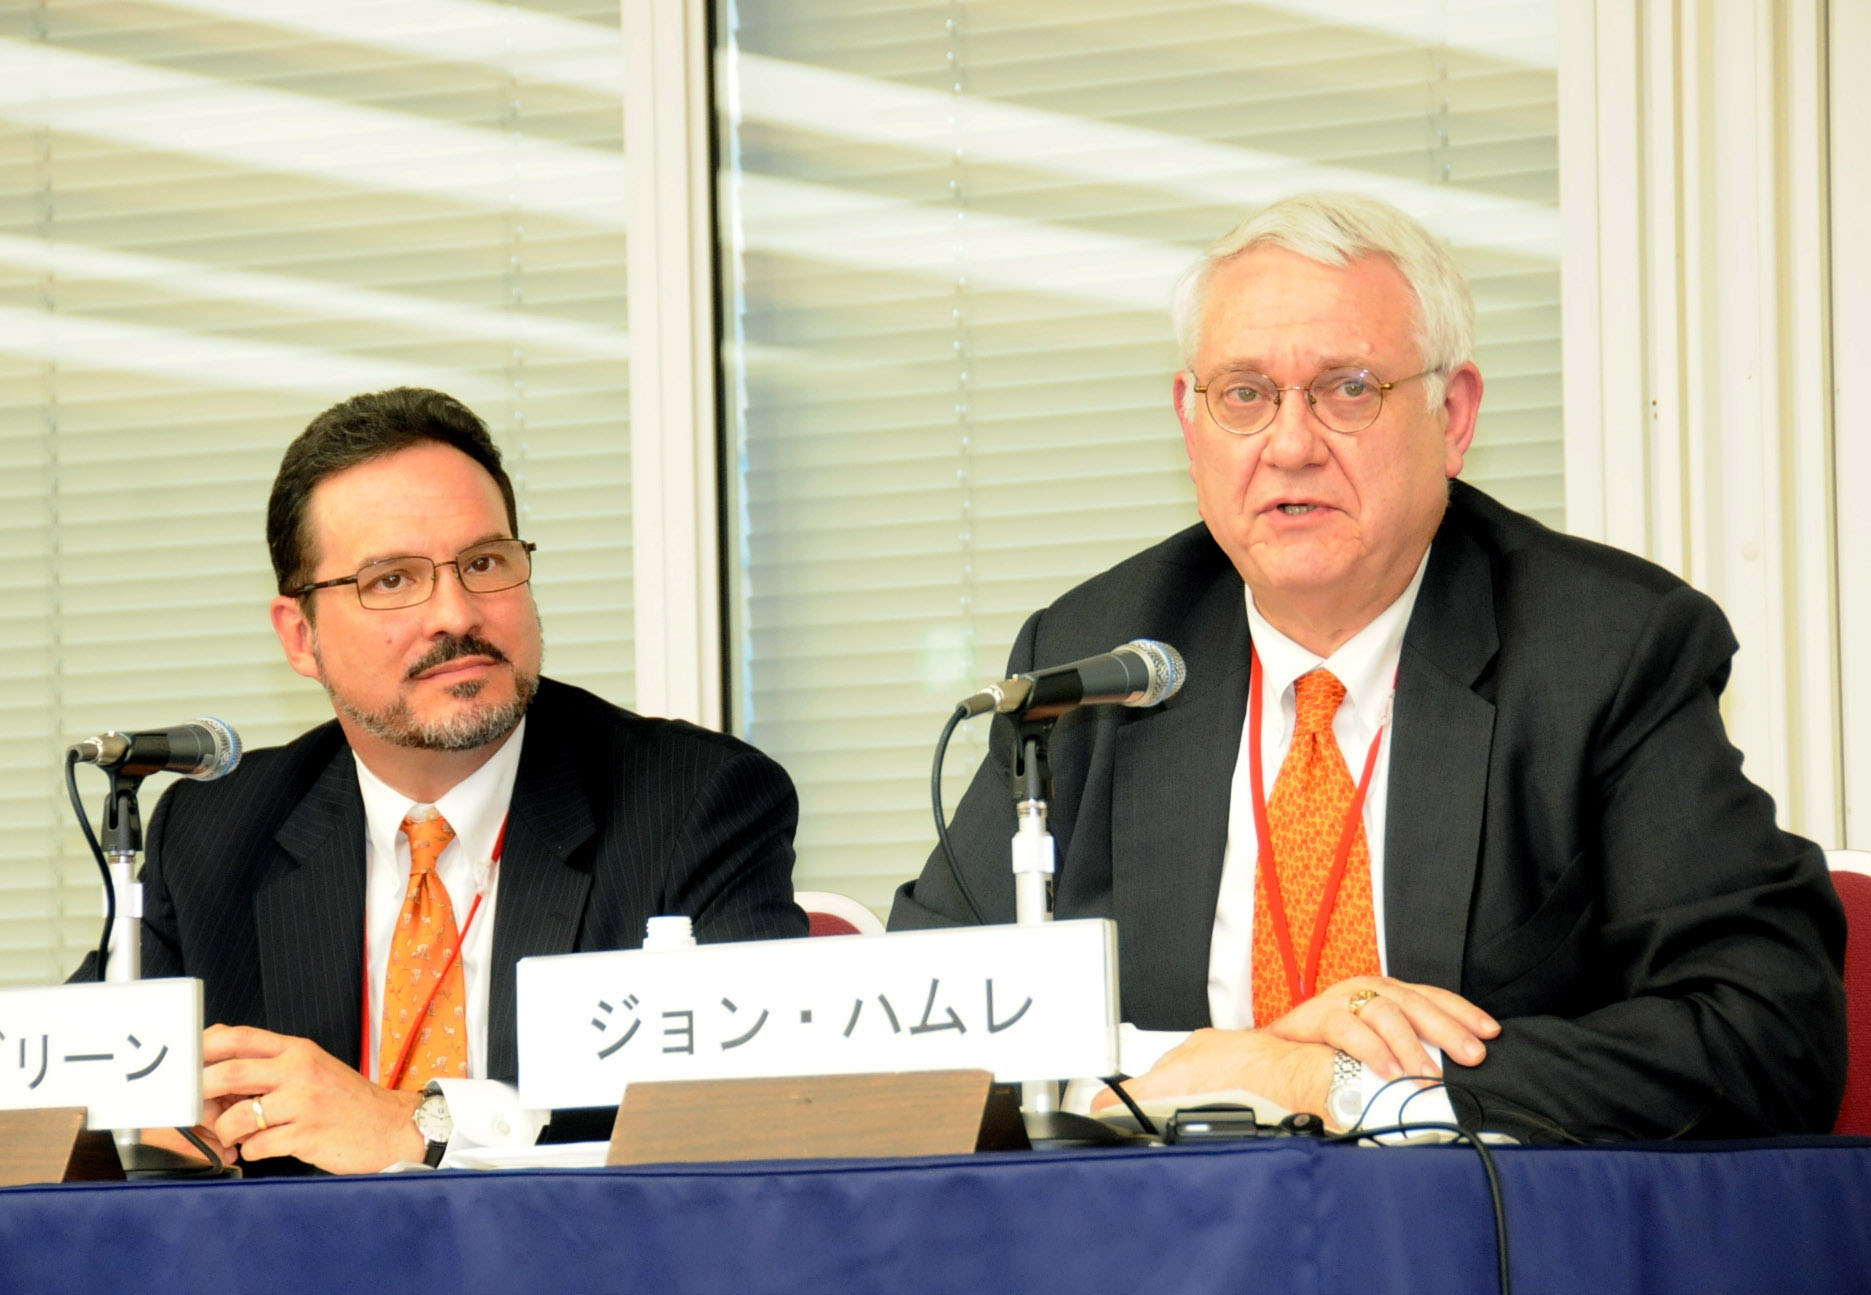 John Hamre (right), president and CEO of the Center for Strategic and International Studies, discusses Japan's nuclear energy policy during a seminar at Keidanren Kaikan in Tokyo on Oct. 25, as CSIS colleague Michael Green listens. satoko kawasaki